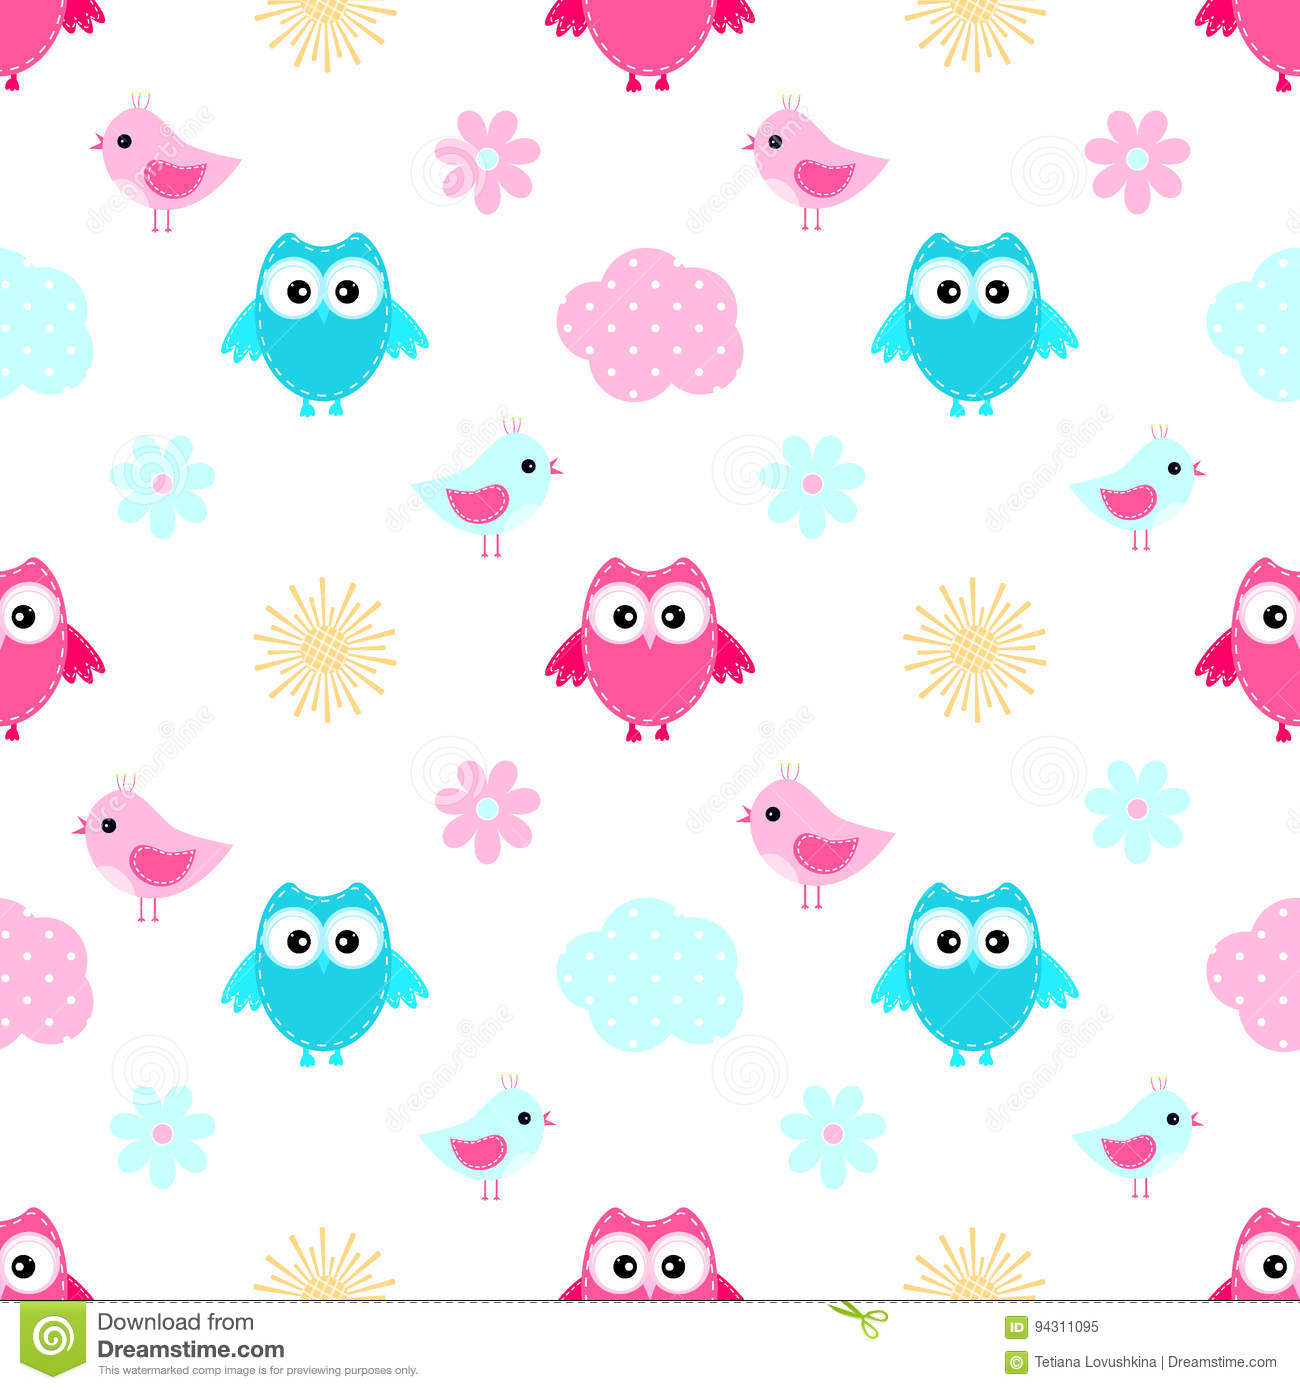 Owl cloud seamless pattern